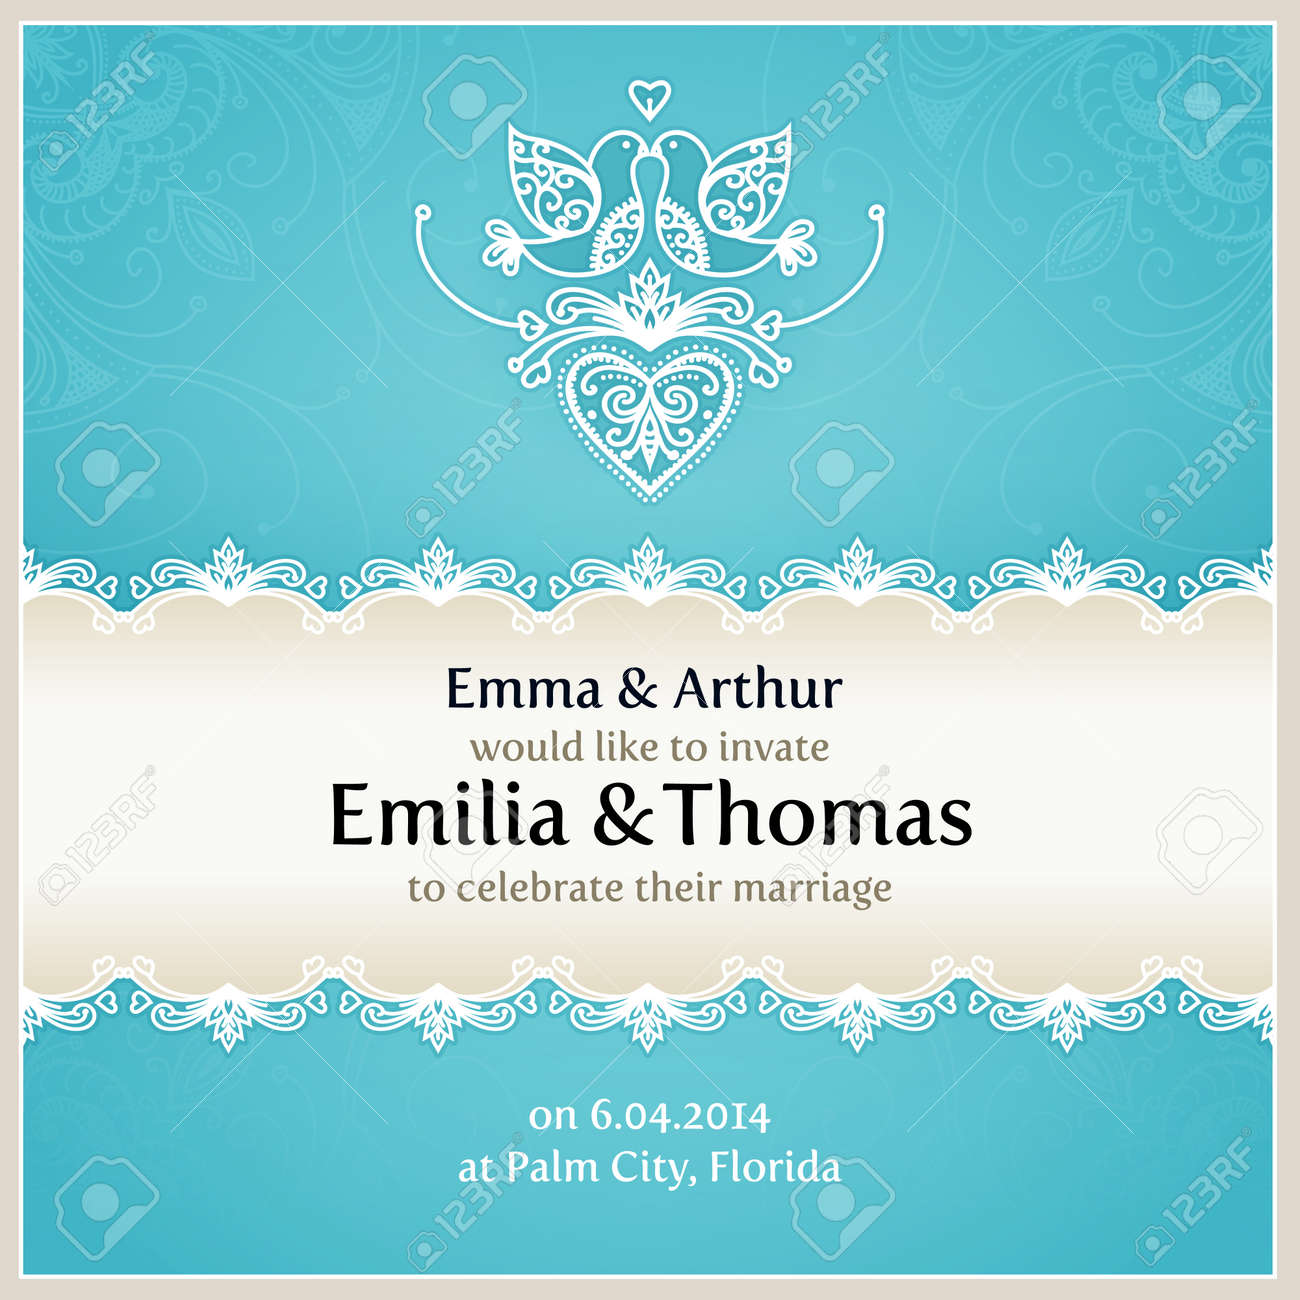 blue wedding invitation design template with doves hearts flowers